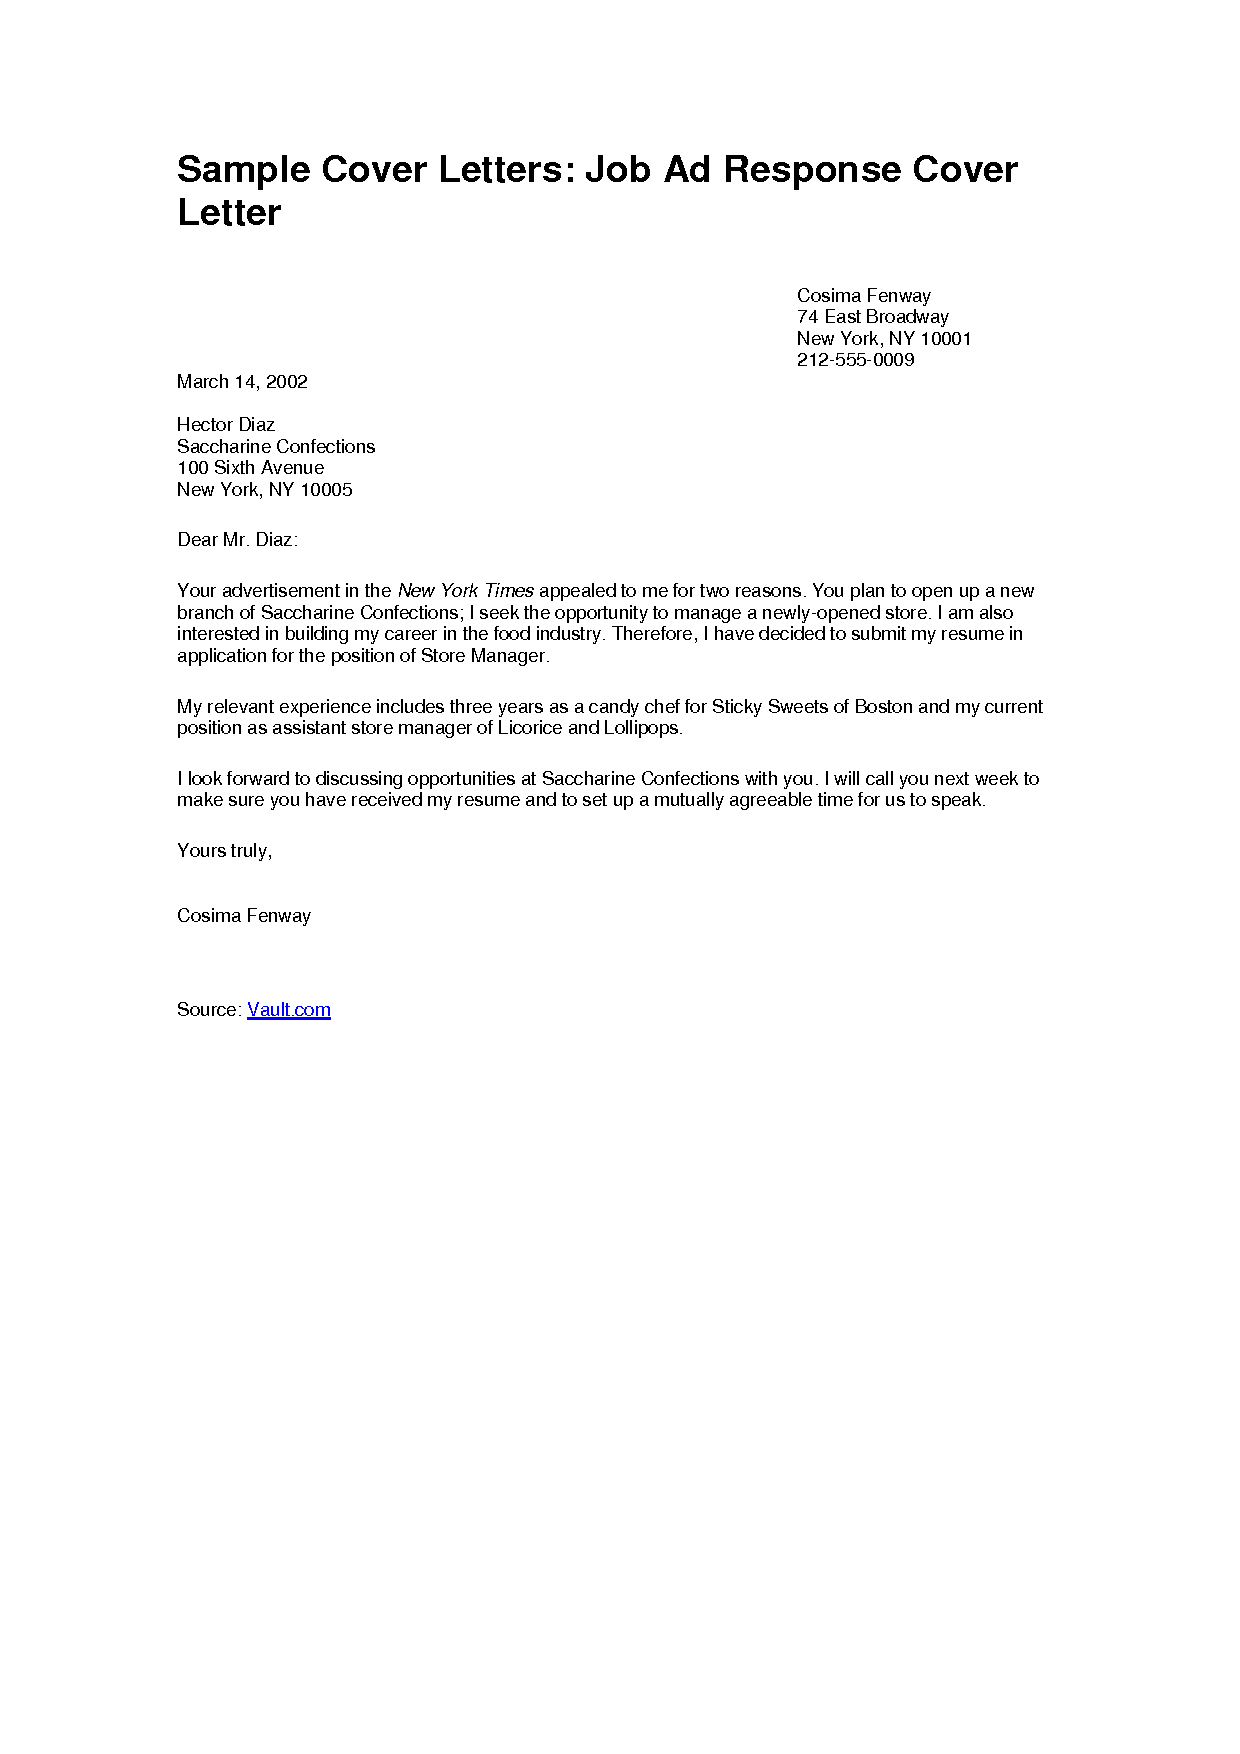 8 employment cover letter templates to download sample